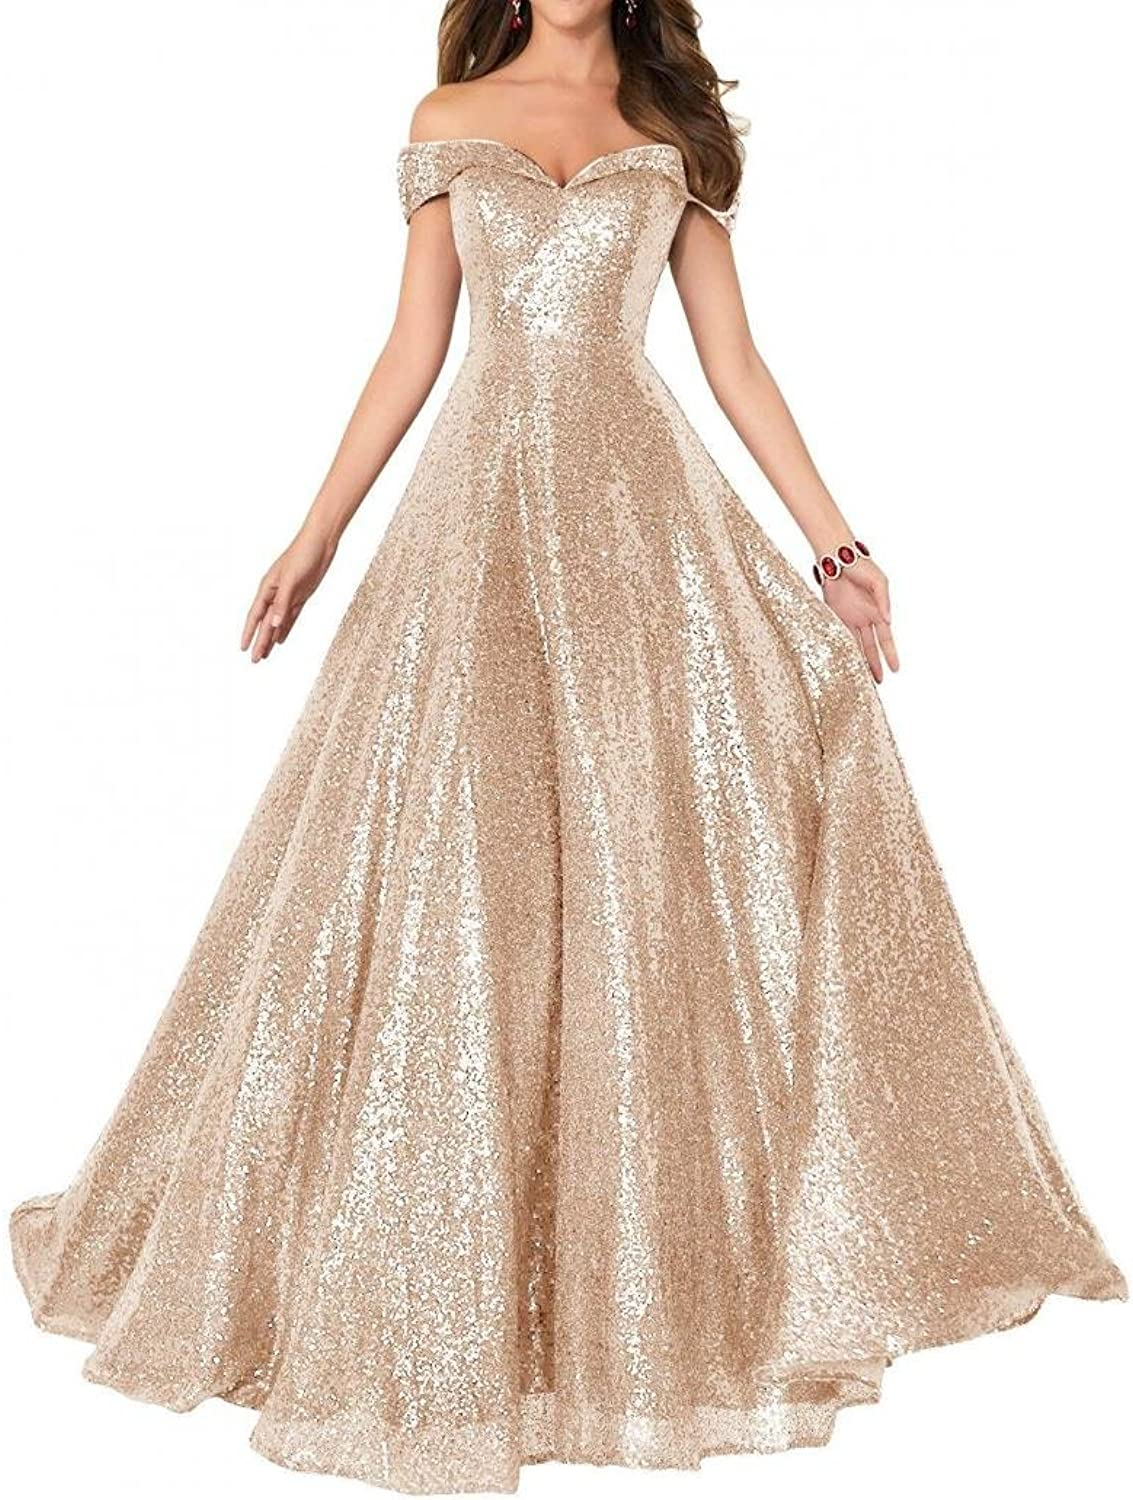 Dannifore Sequins Off Shoulder Empire Waist Prom Dresses Long Evening Dresses Formal